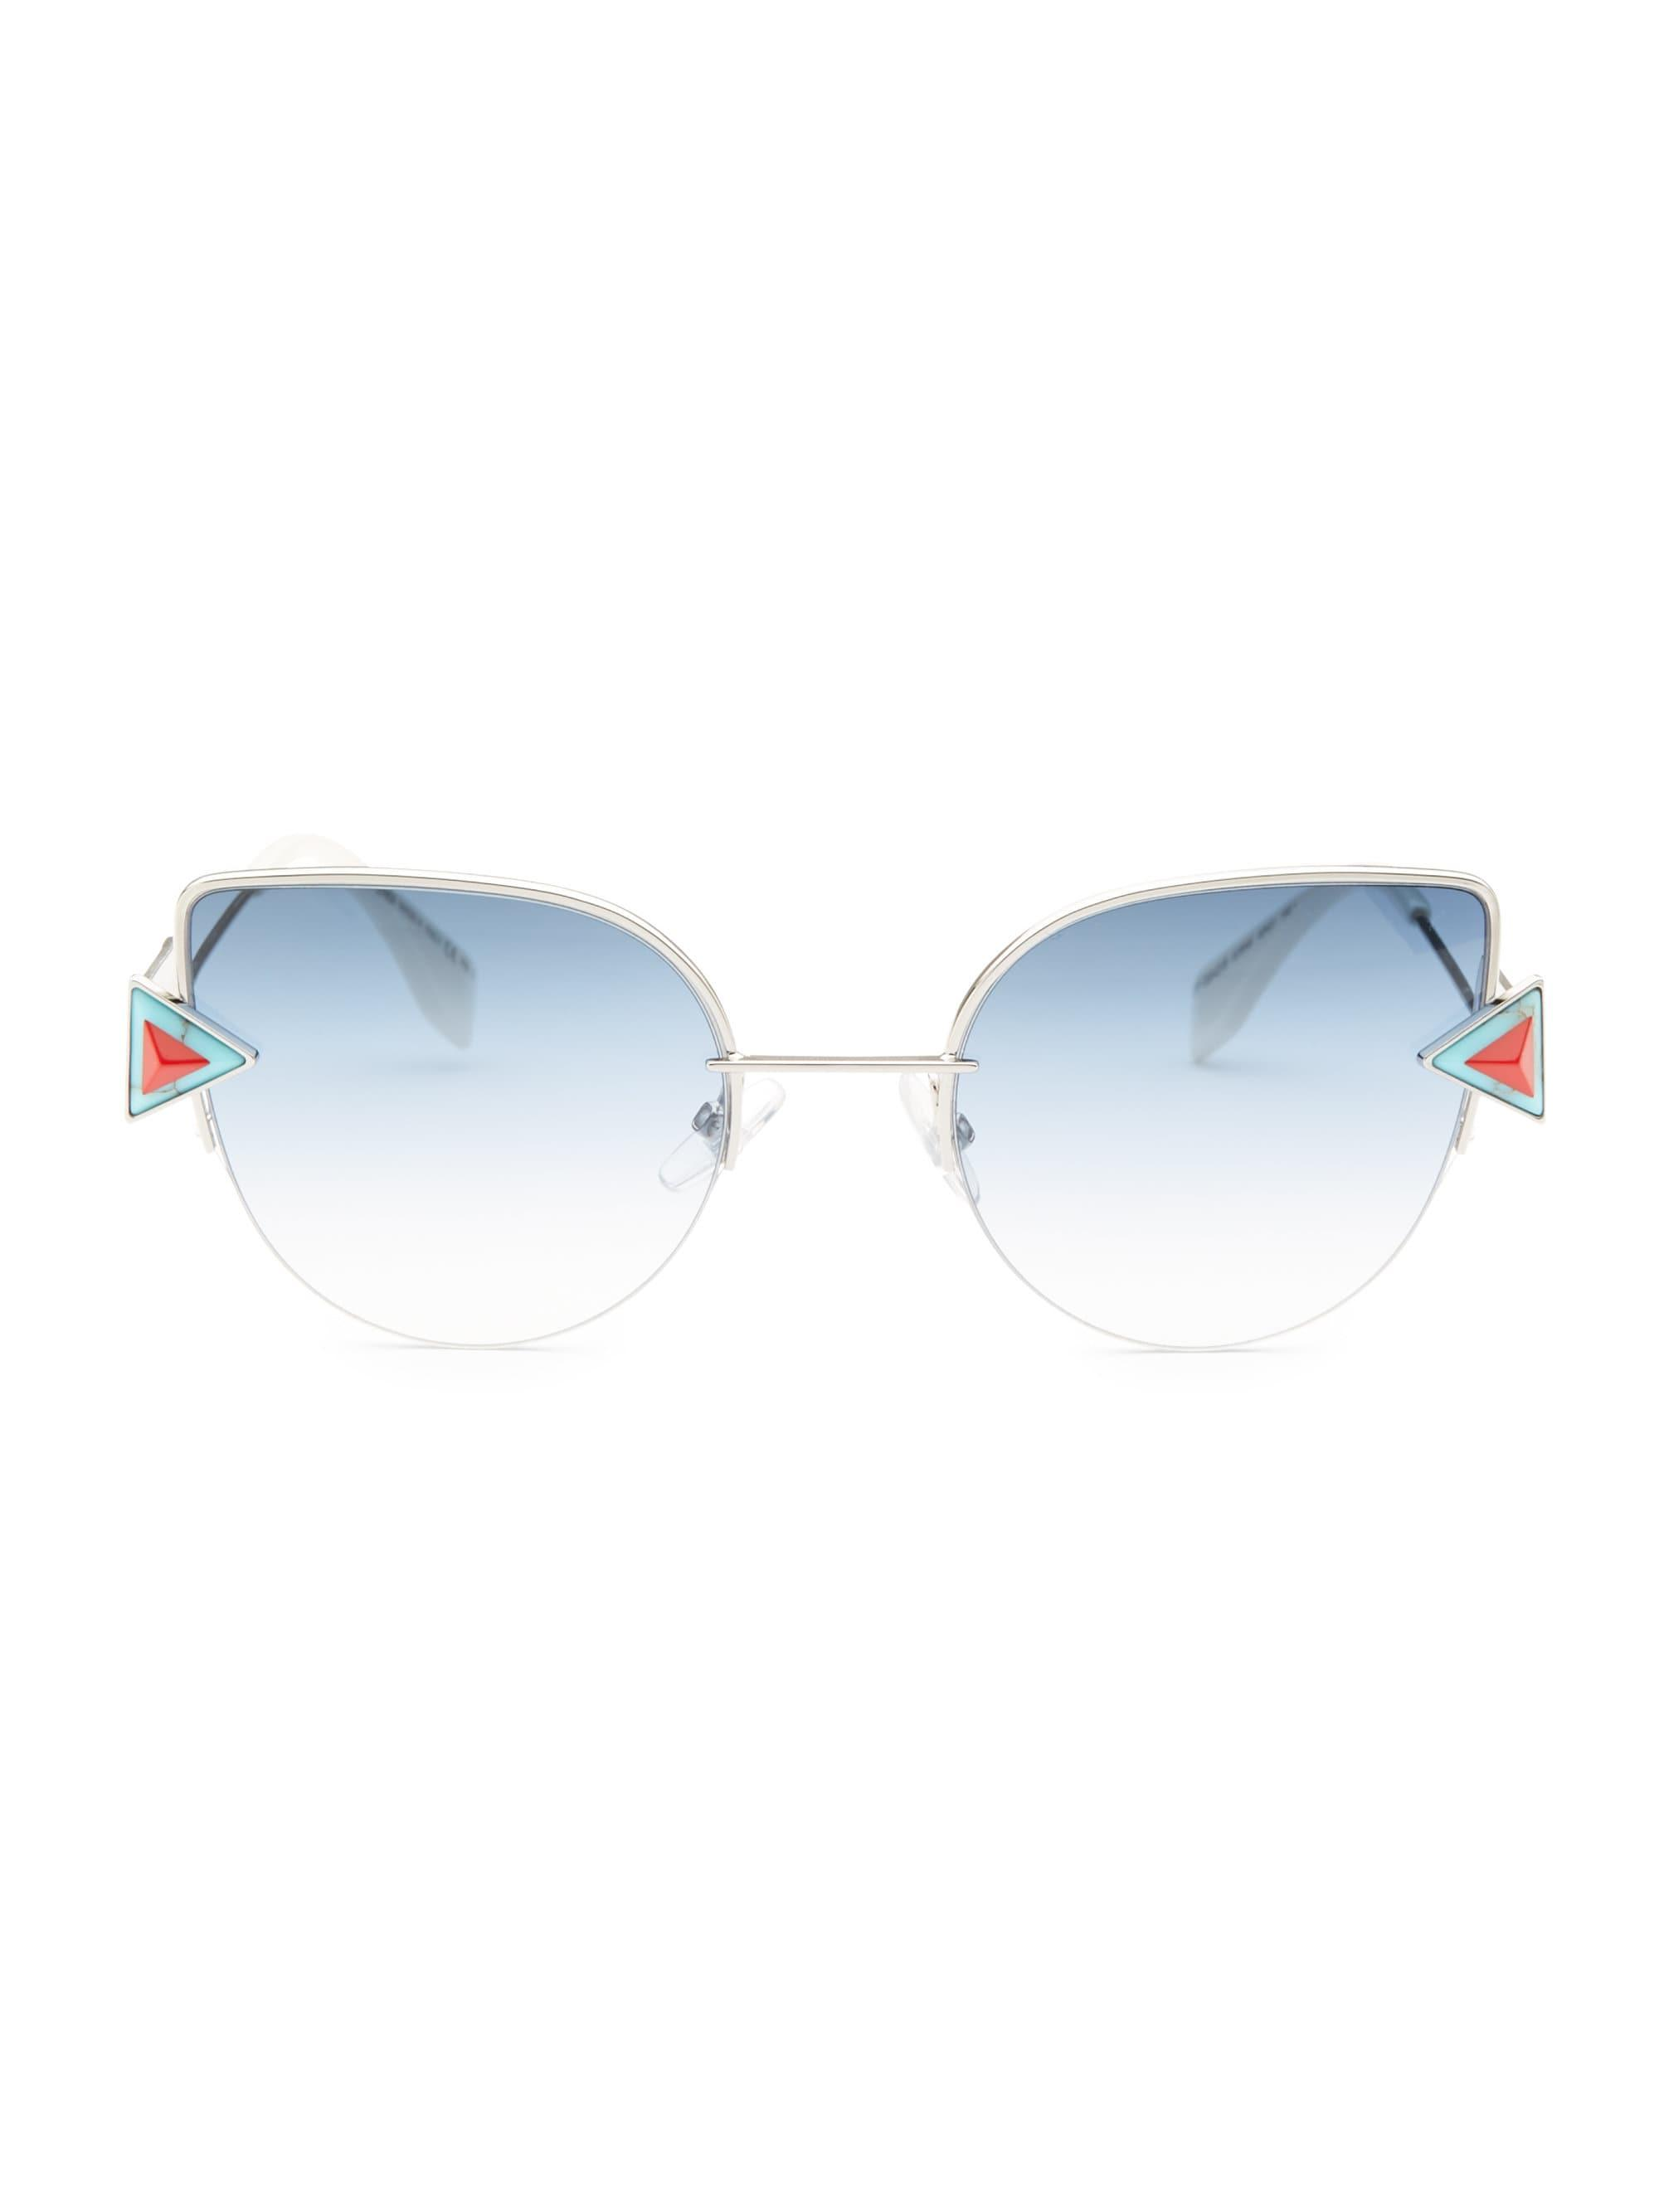 a05a1c5a47e35 Fendi Rainbow 52mm Cat Eye Sunglasses in Blue - Lyst